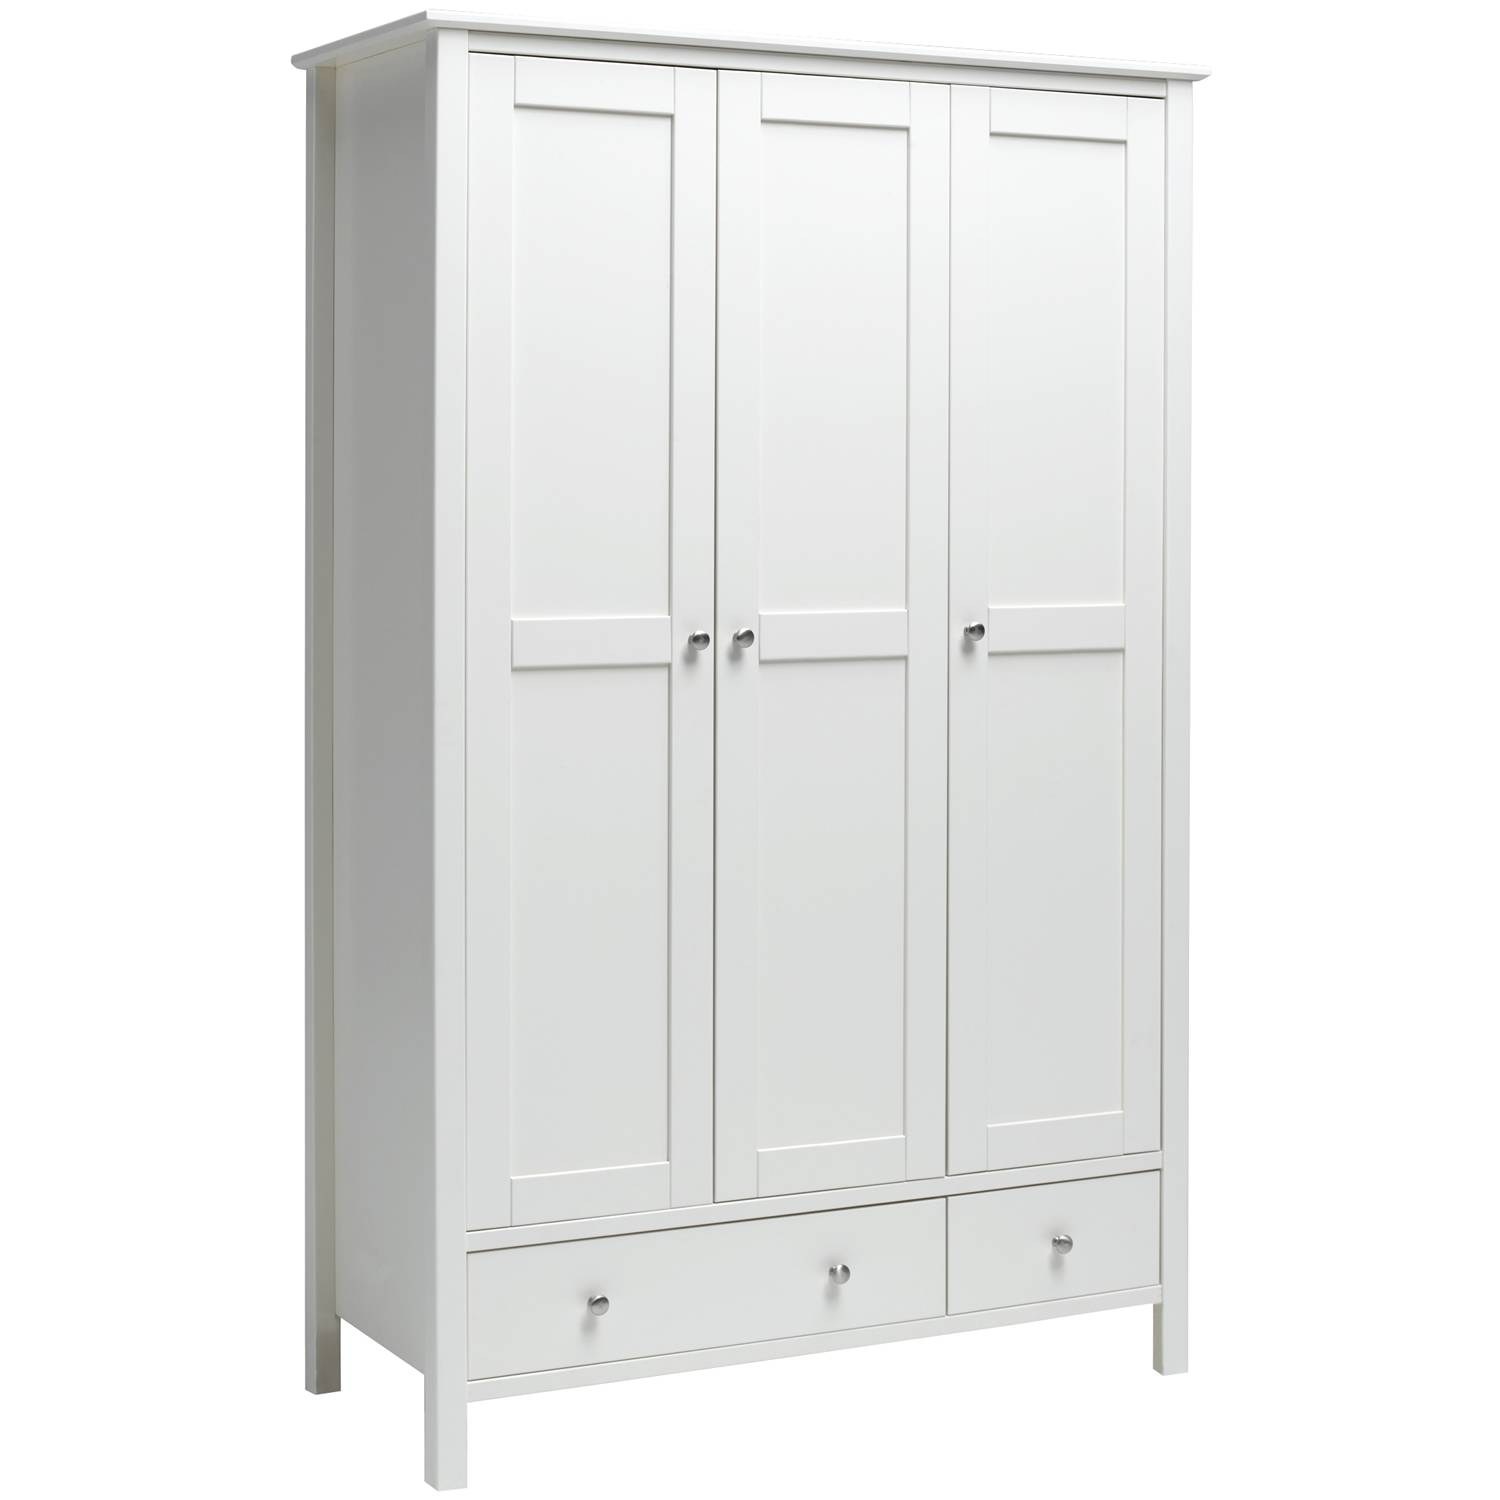 Stockholm 3 Door 2 Drawer Wardrobe White - Simply Furniture within 3 Door White Wardrobes (Image 24 of 30)